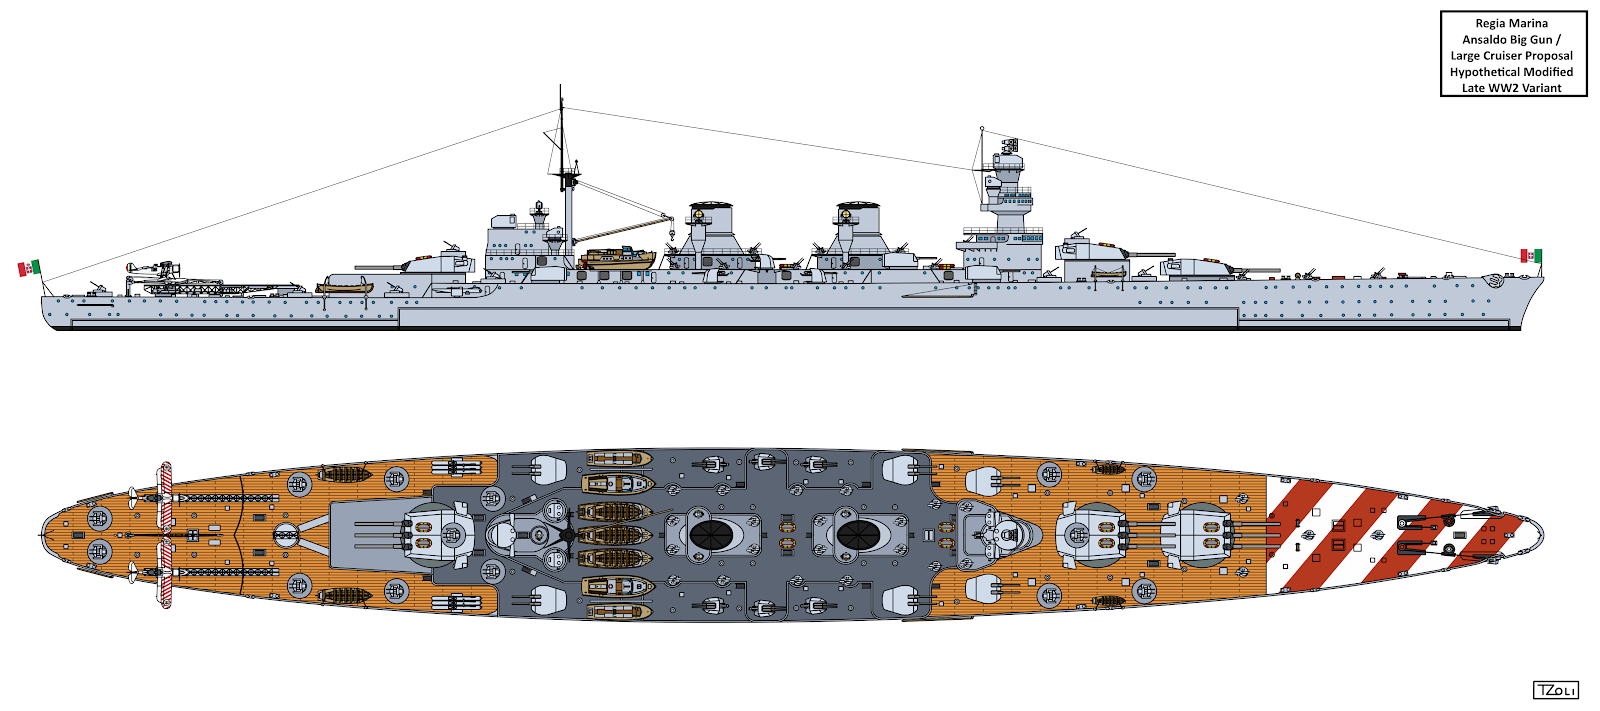 hight resolution of udine ansaldo s 1936 project for a russian cruiser featured the best features of italian engineering at the time